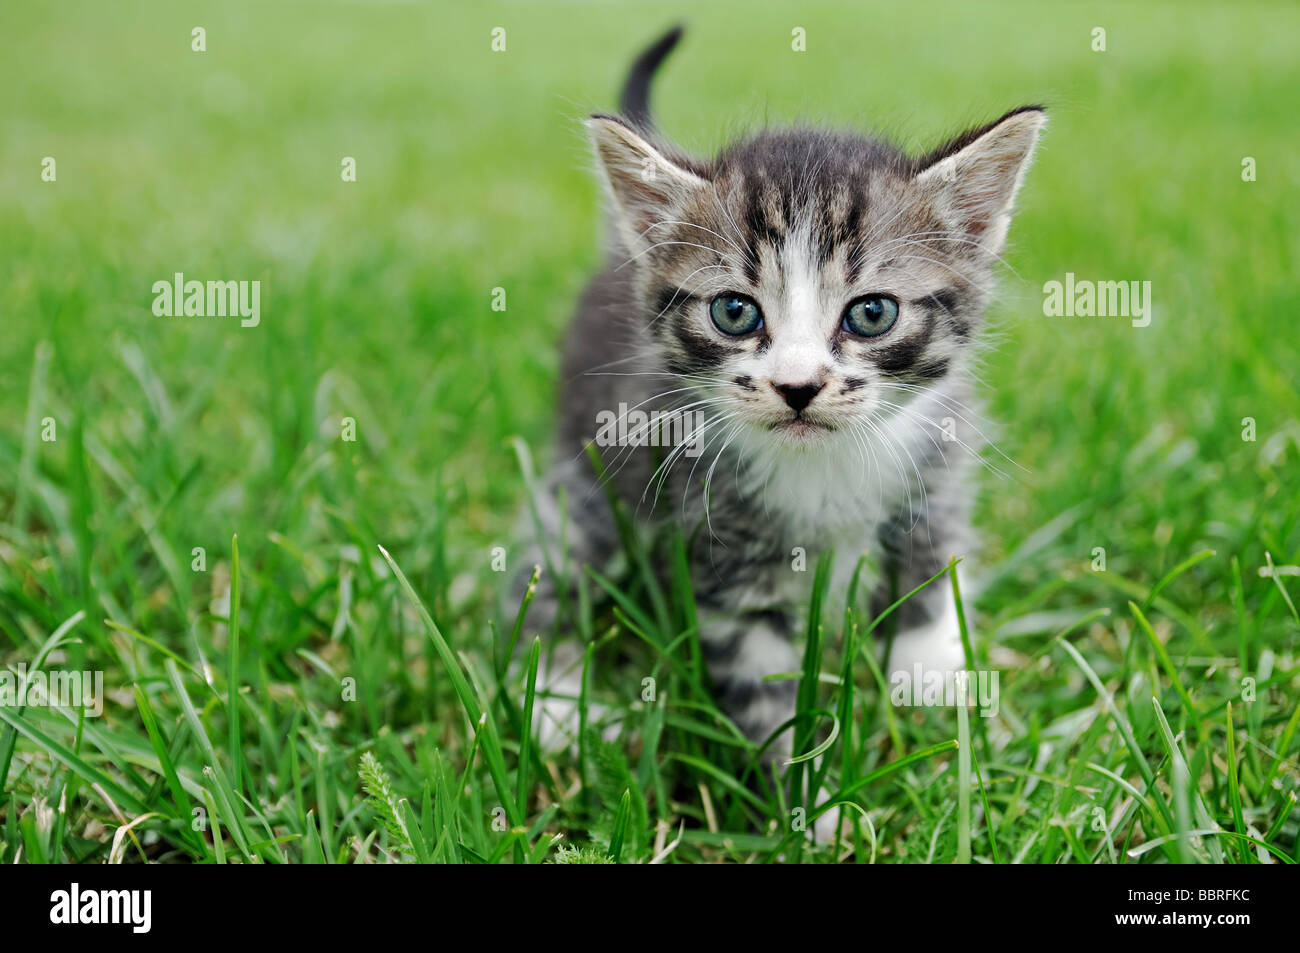 Kitten Outside Walking Through Grass - Stock Image